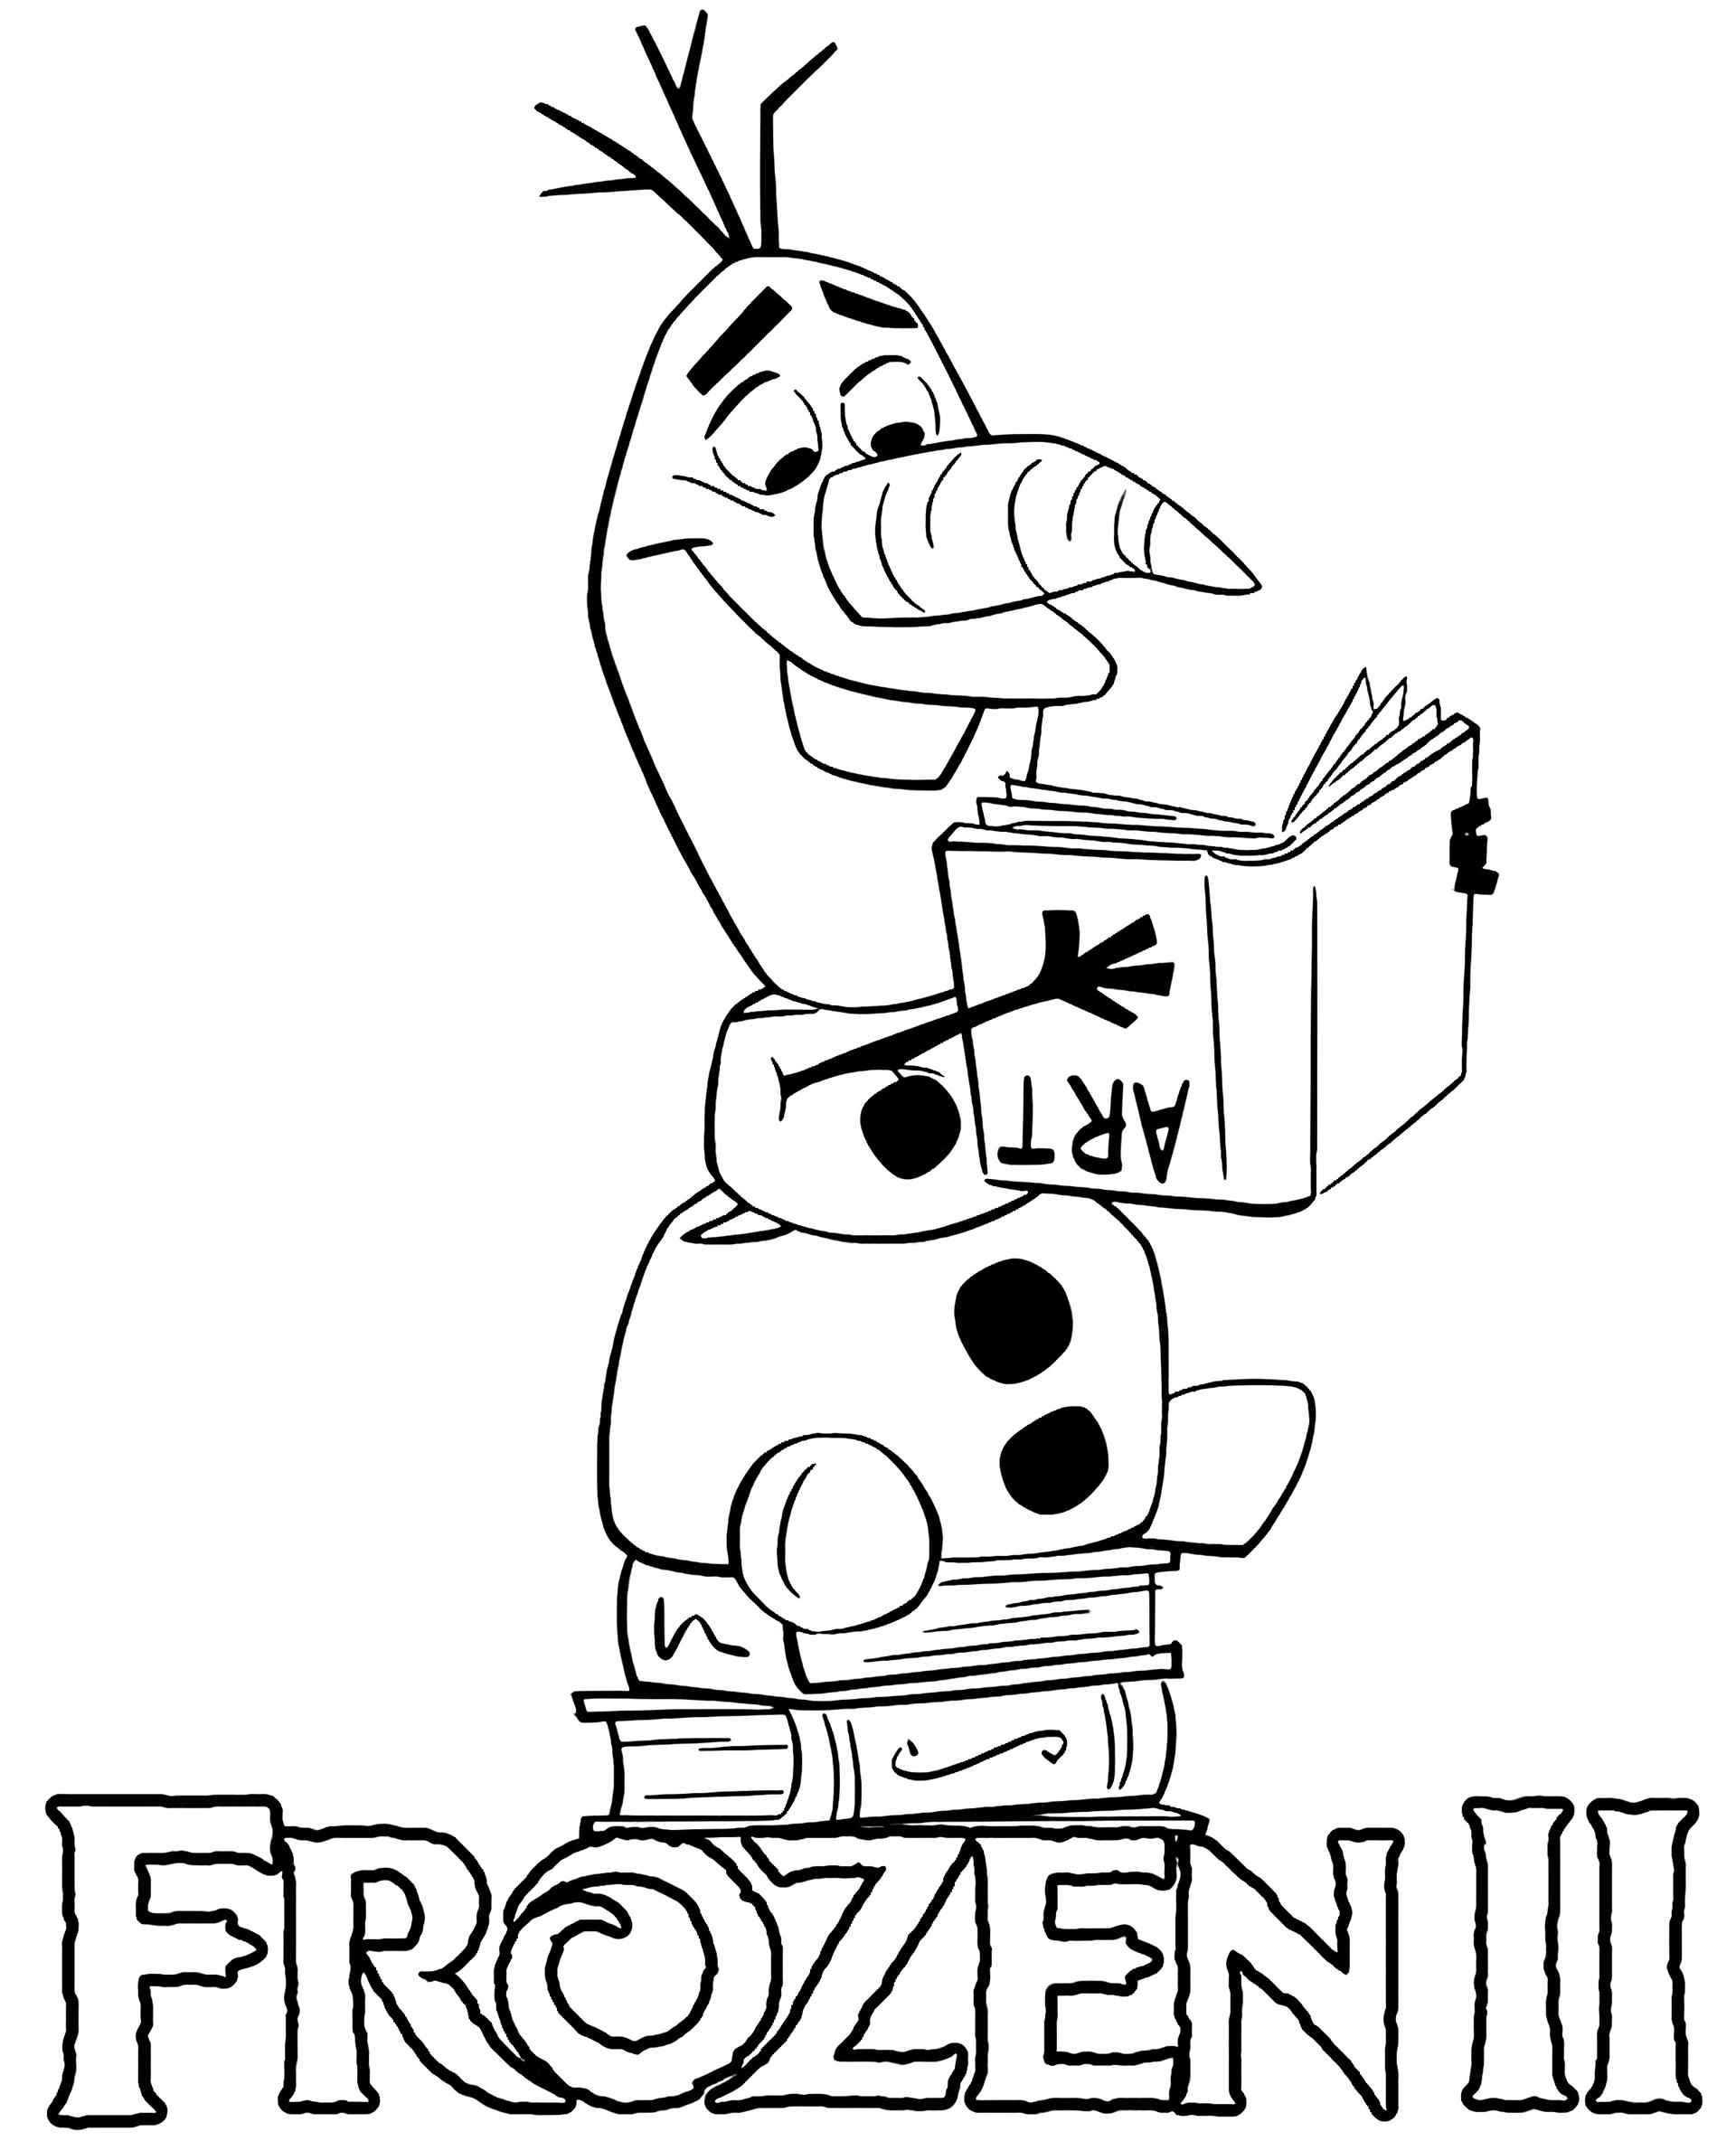 Silly Olaf From Frozen 2 Coloring Page